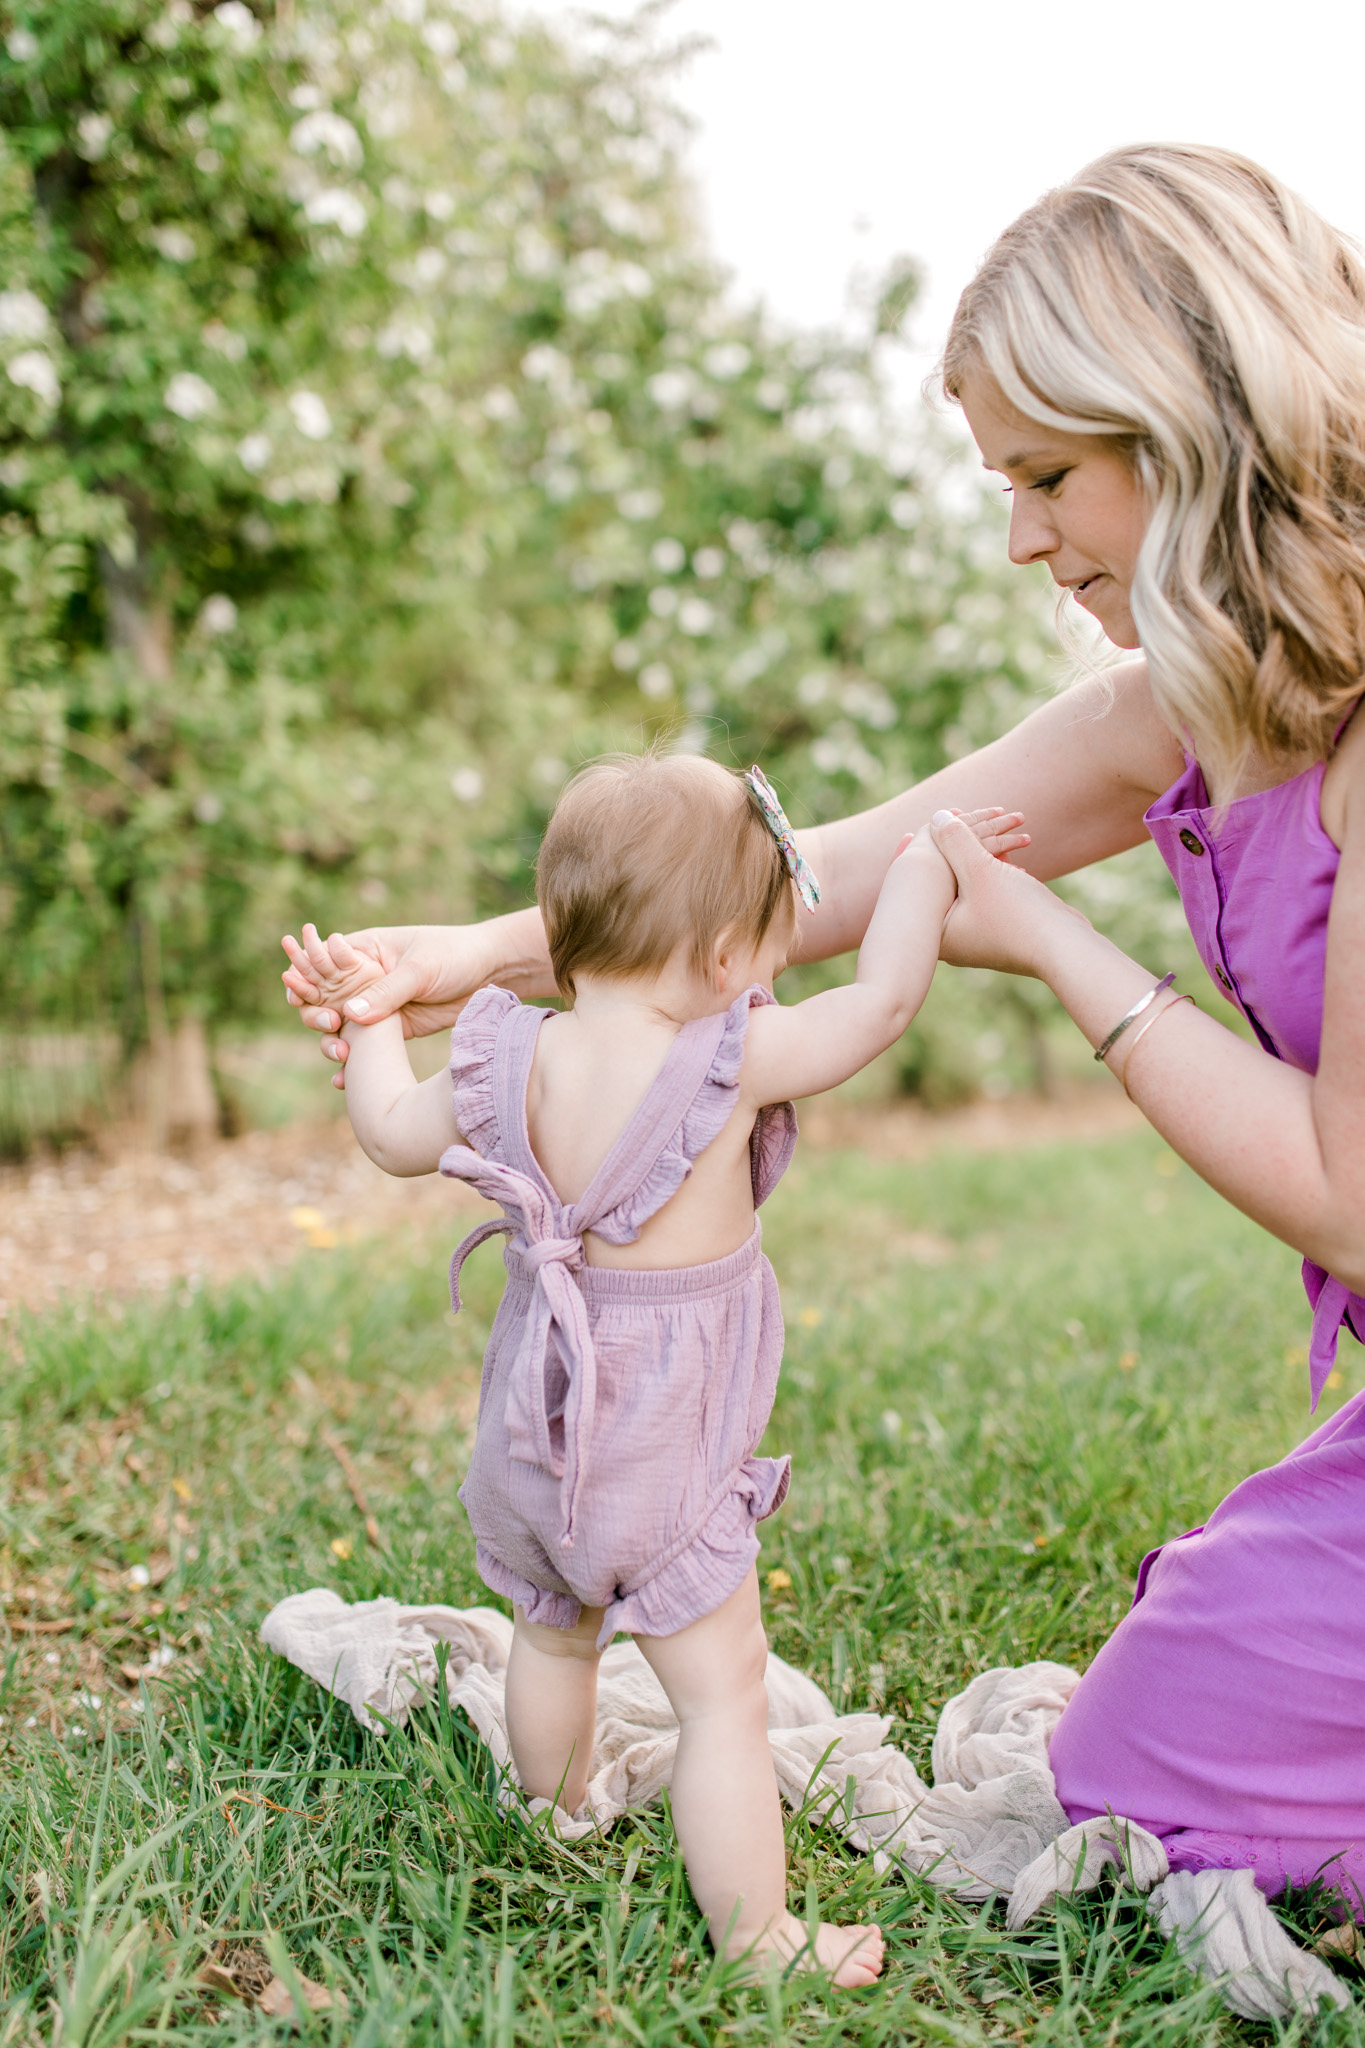 Baby Girl One Year Birthday Session at the Orchard | Spring Apple Blossom Session | Lifestyle Photography | Light & Airy Photography | West Michigan Photographer